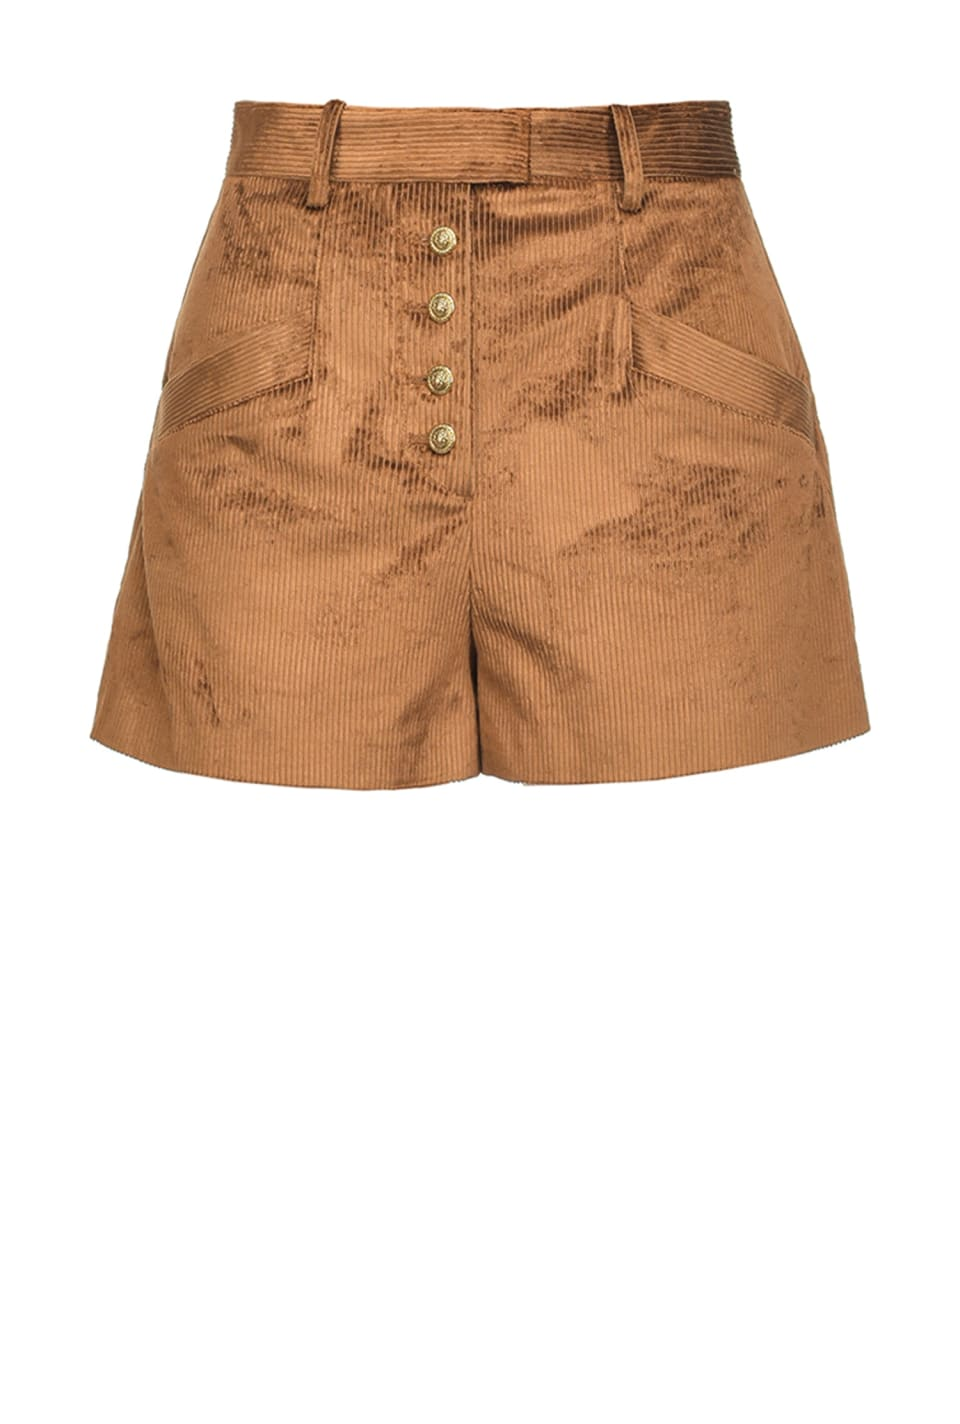 Corduroy loose-fitting shorts - Pinko